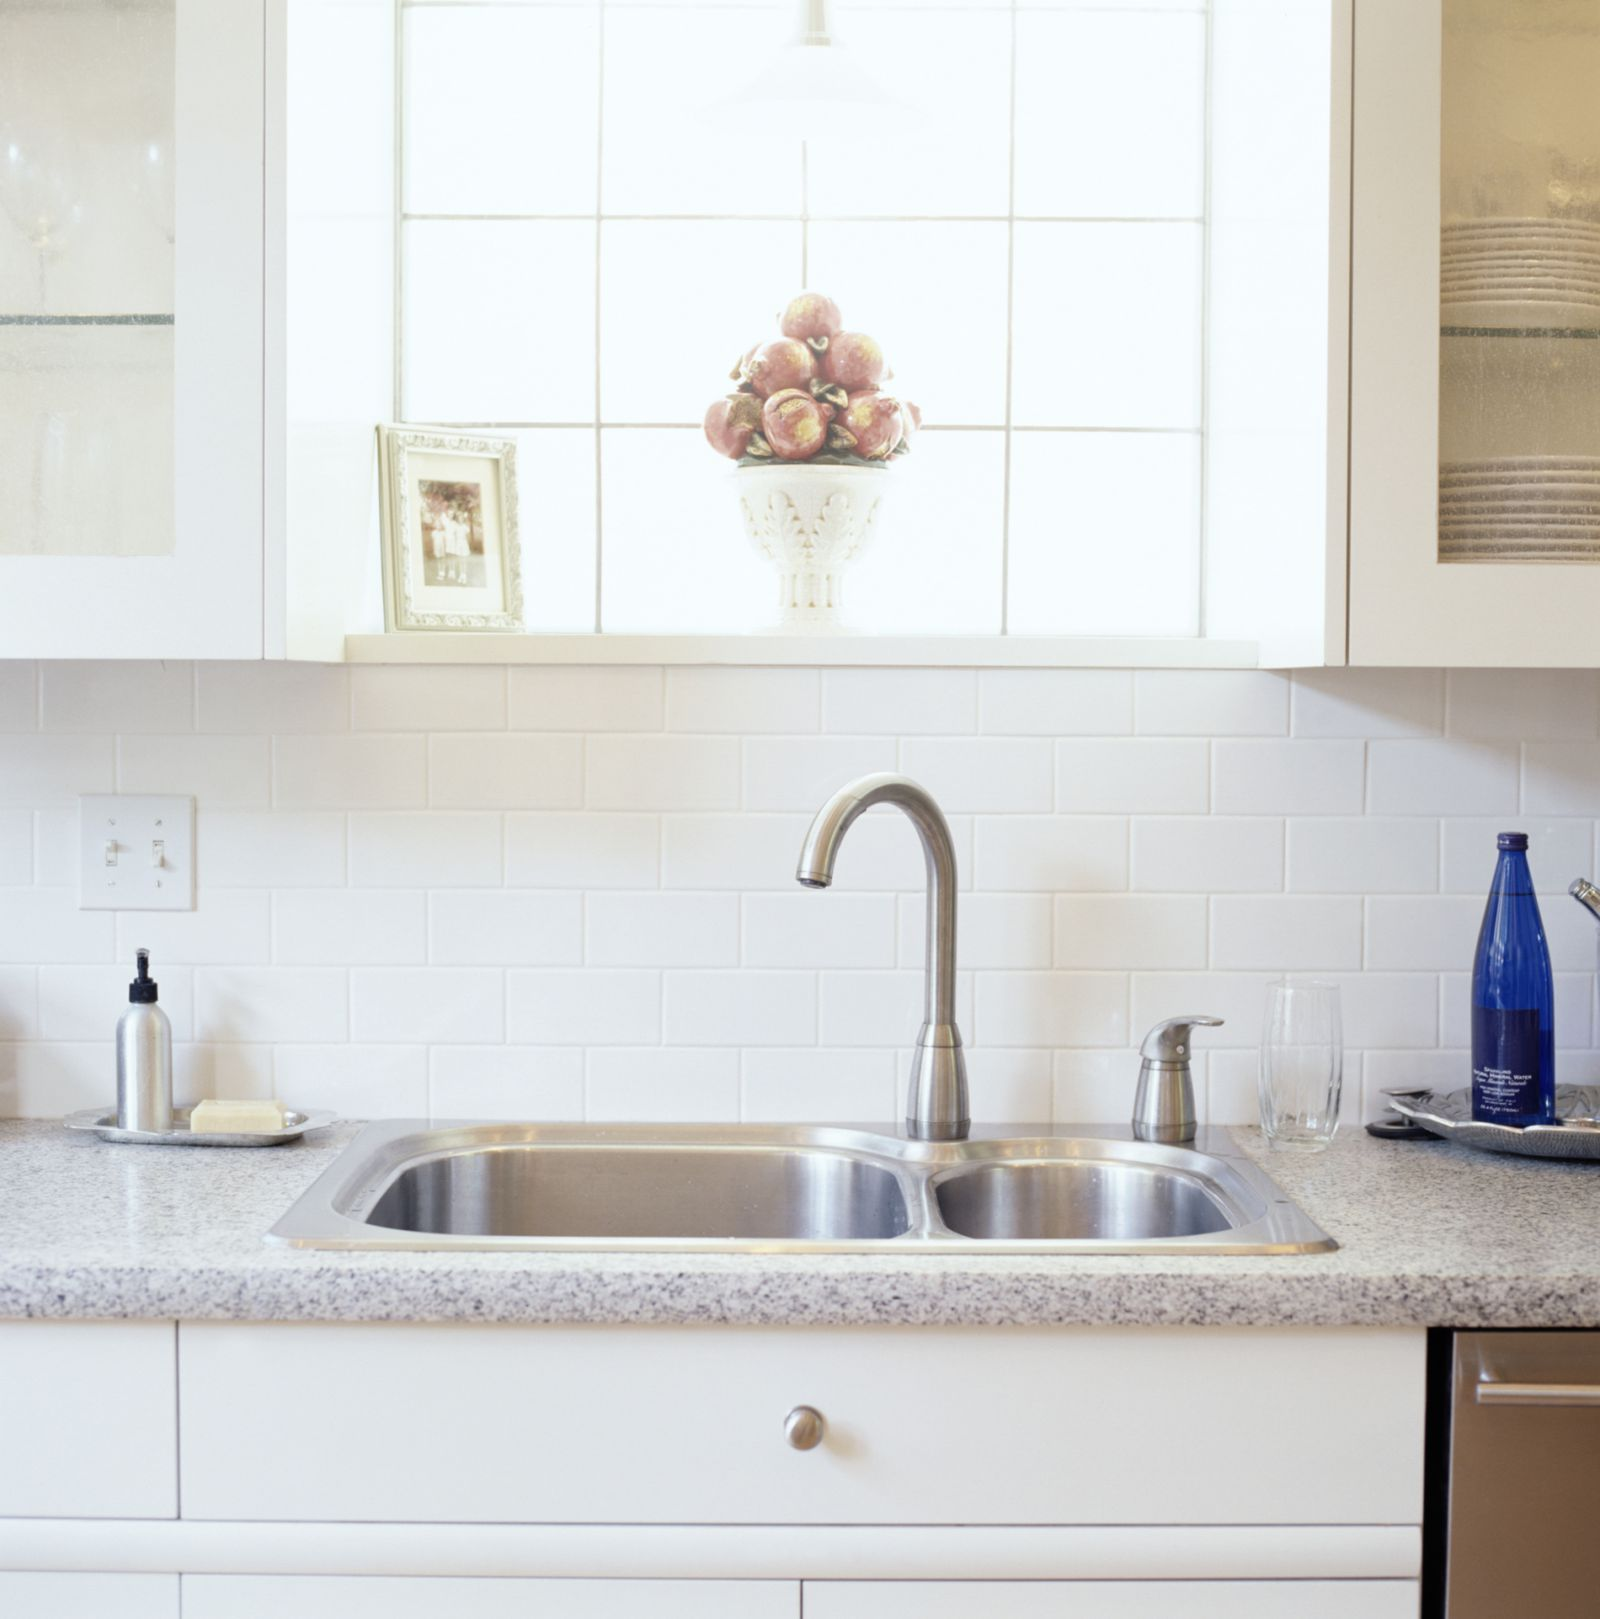 The Best Way To Clean The Kitchen Sinkgoodhousemag